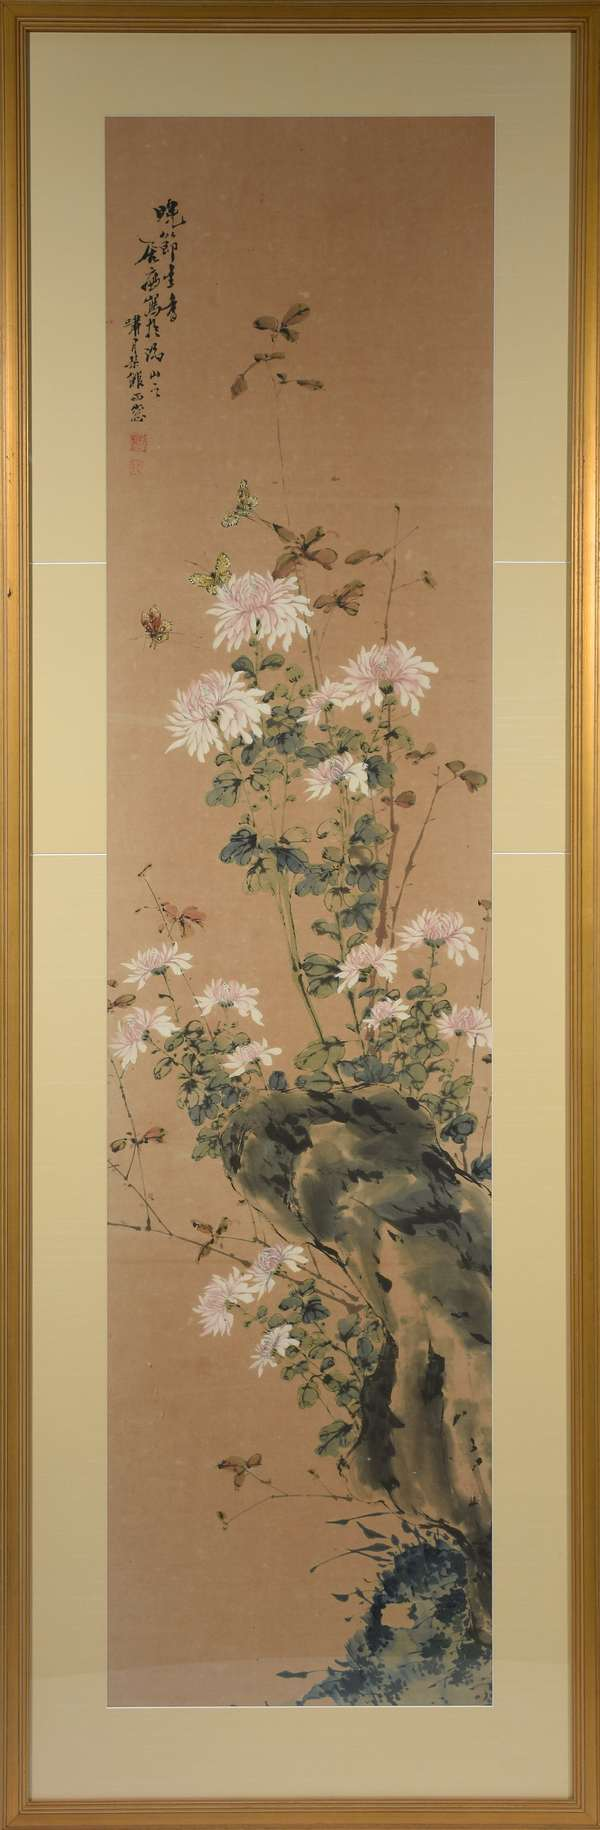 """Large Chinese watercolor and gouache on paper of Fuji mums on a rocky outcrop with butterflies, artist signed upper left. 65.5""""H. x 16""""W., matted and framed, 75.5""""H. x 25.5""""W. overall."""